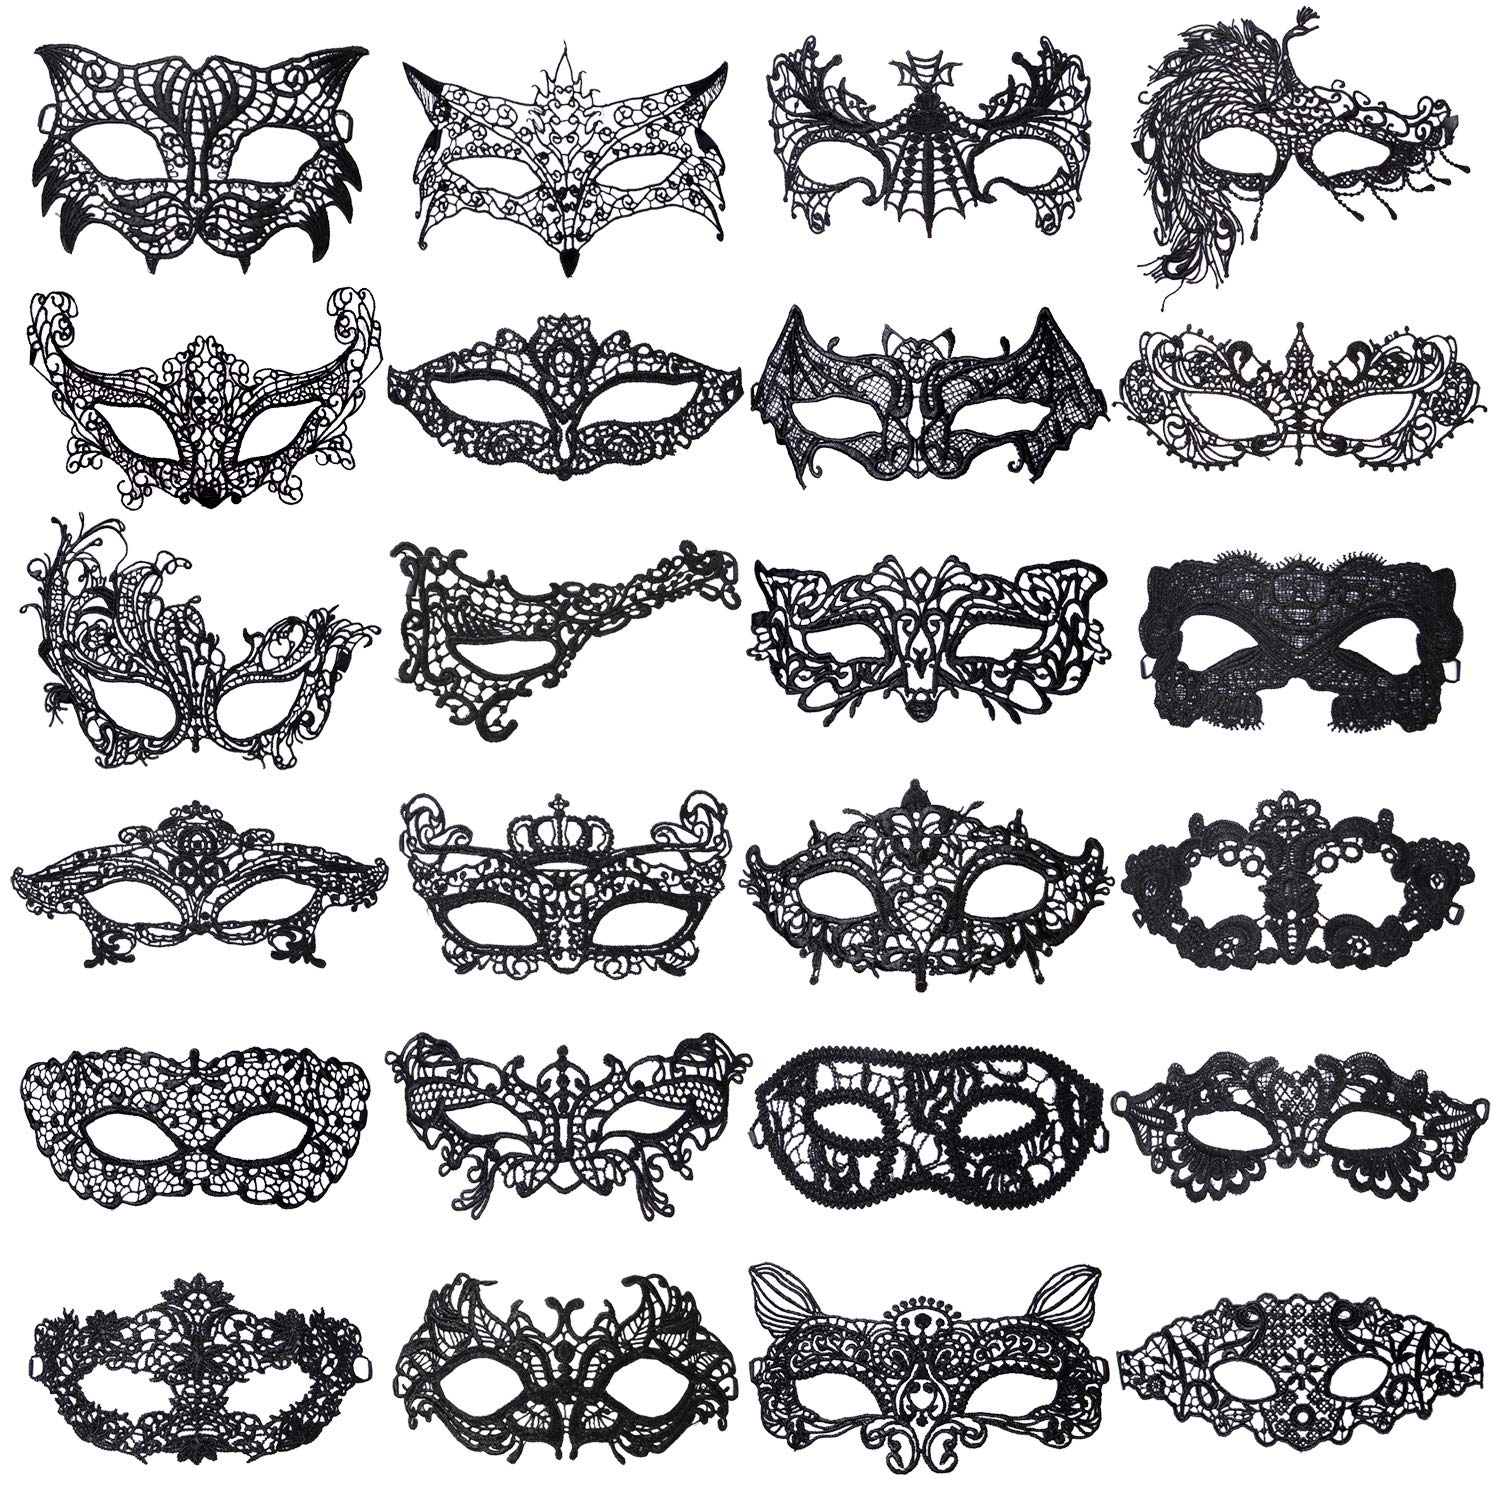 Aneco 24 Pieces Lace Masquerade Mask Halloween Venetian Eyemask Sexy Lace Eye Mask Mysterious Lace Mask for Carnival Party Costume Ball, Black by Aneco